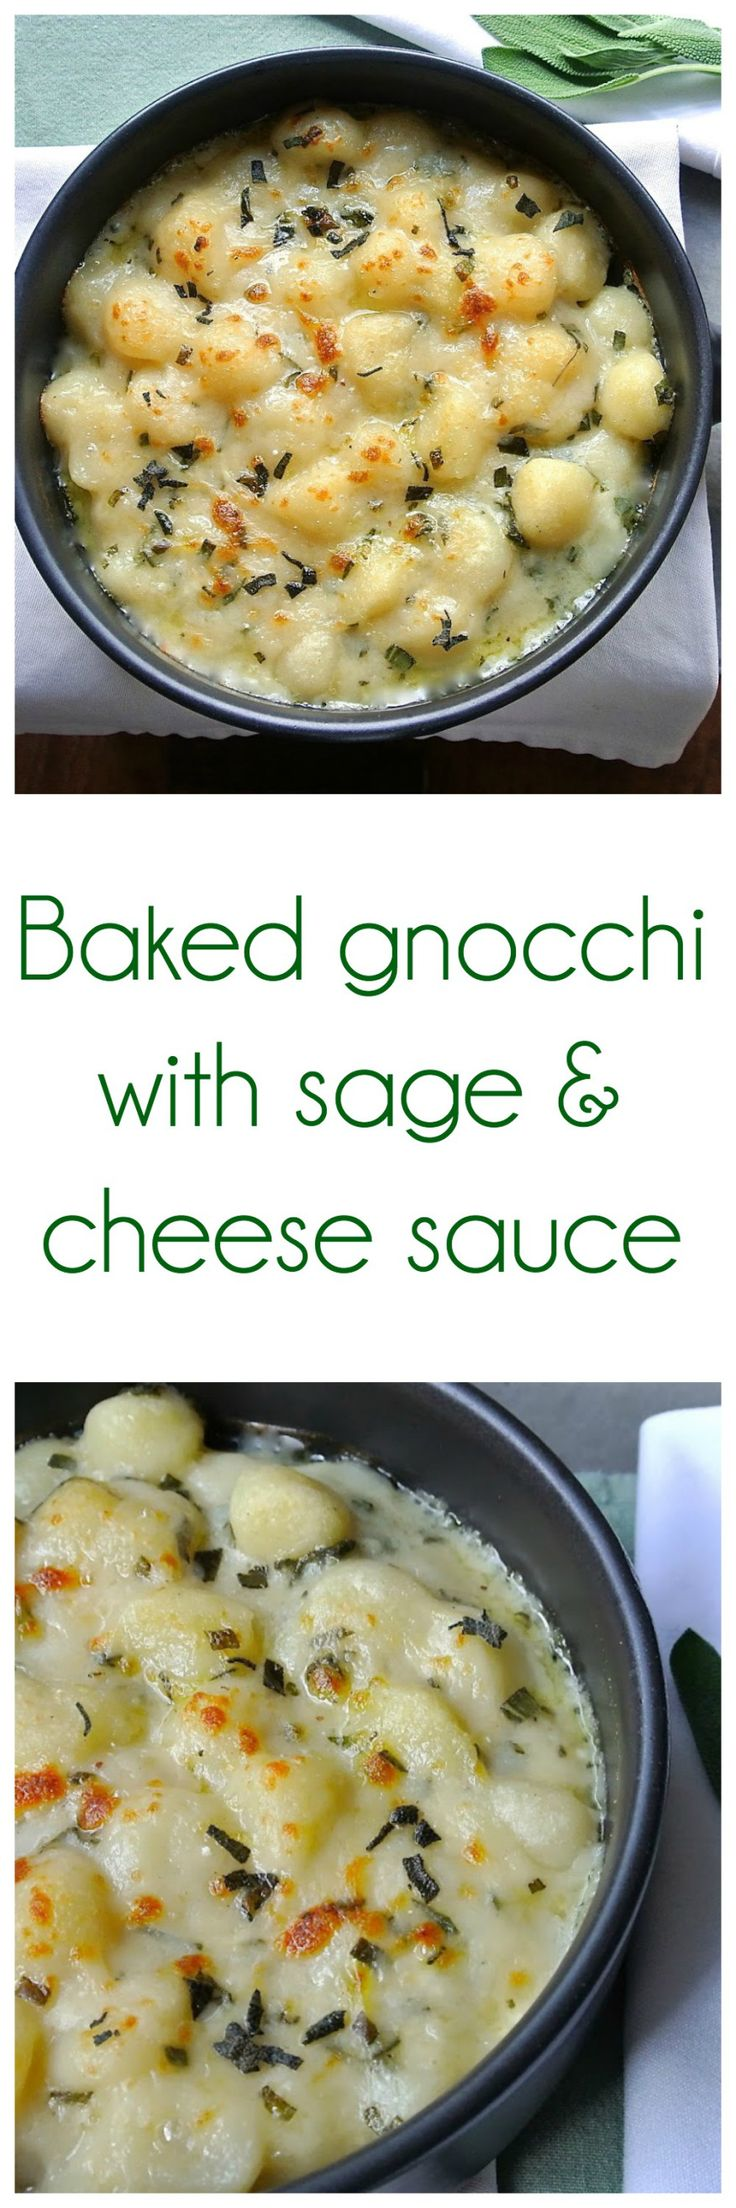 how to make gnocchi soft